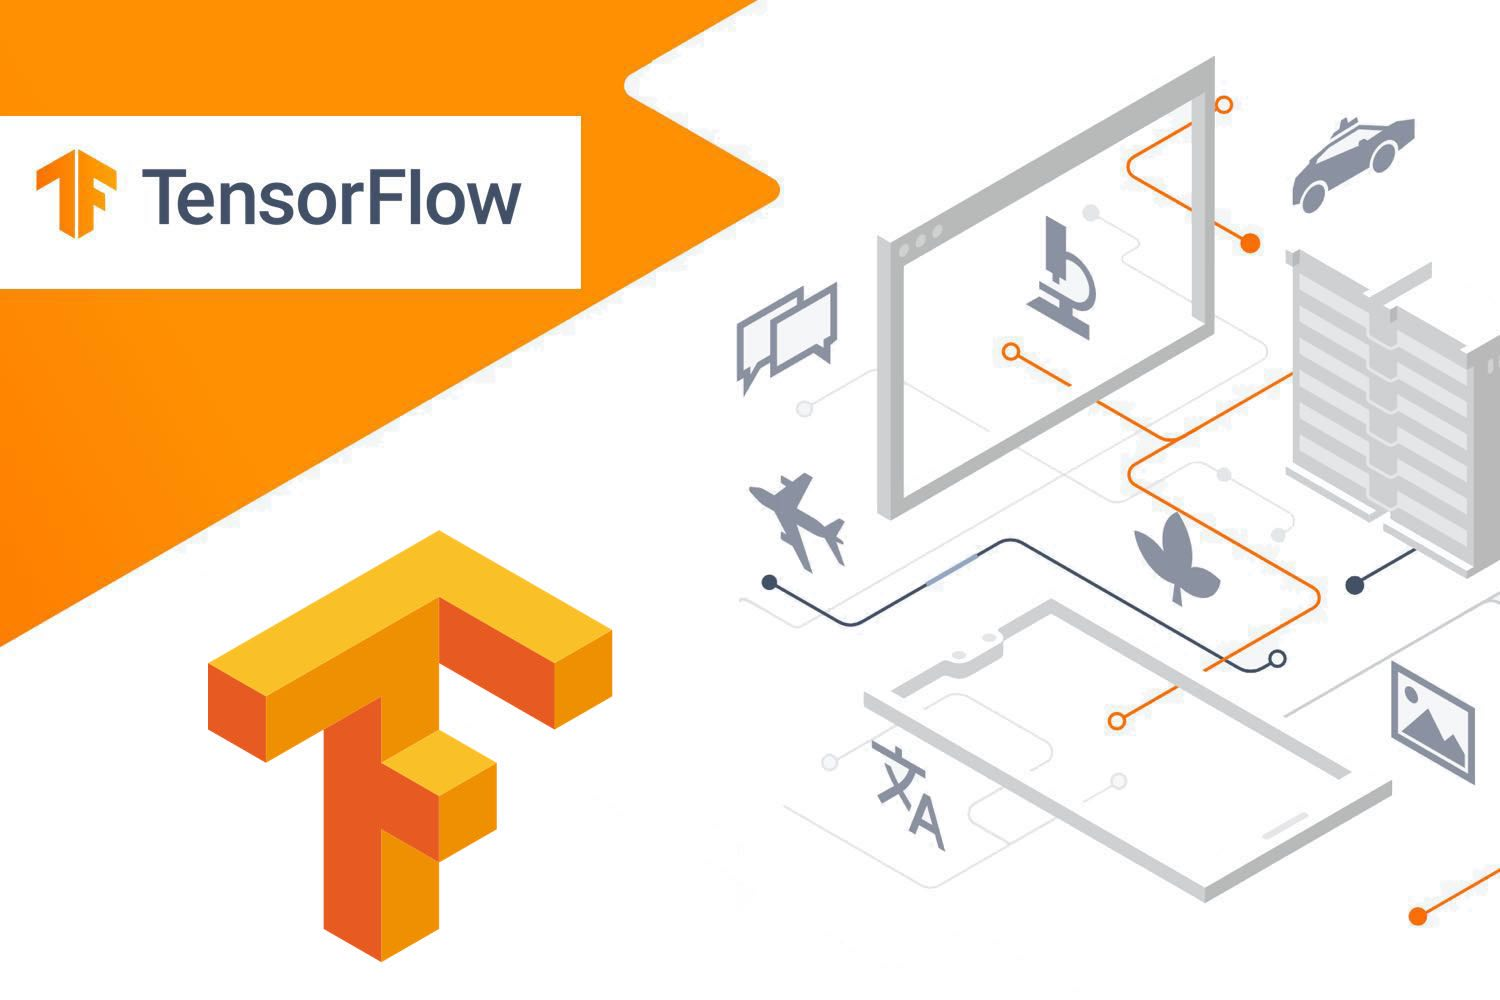 tensorflow, tensorflow beneficios